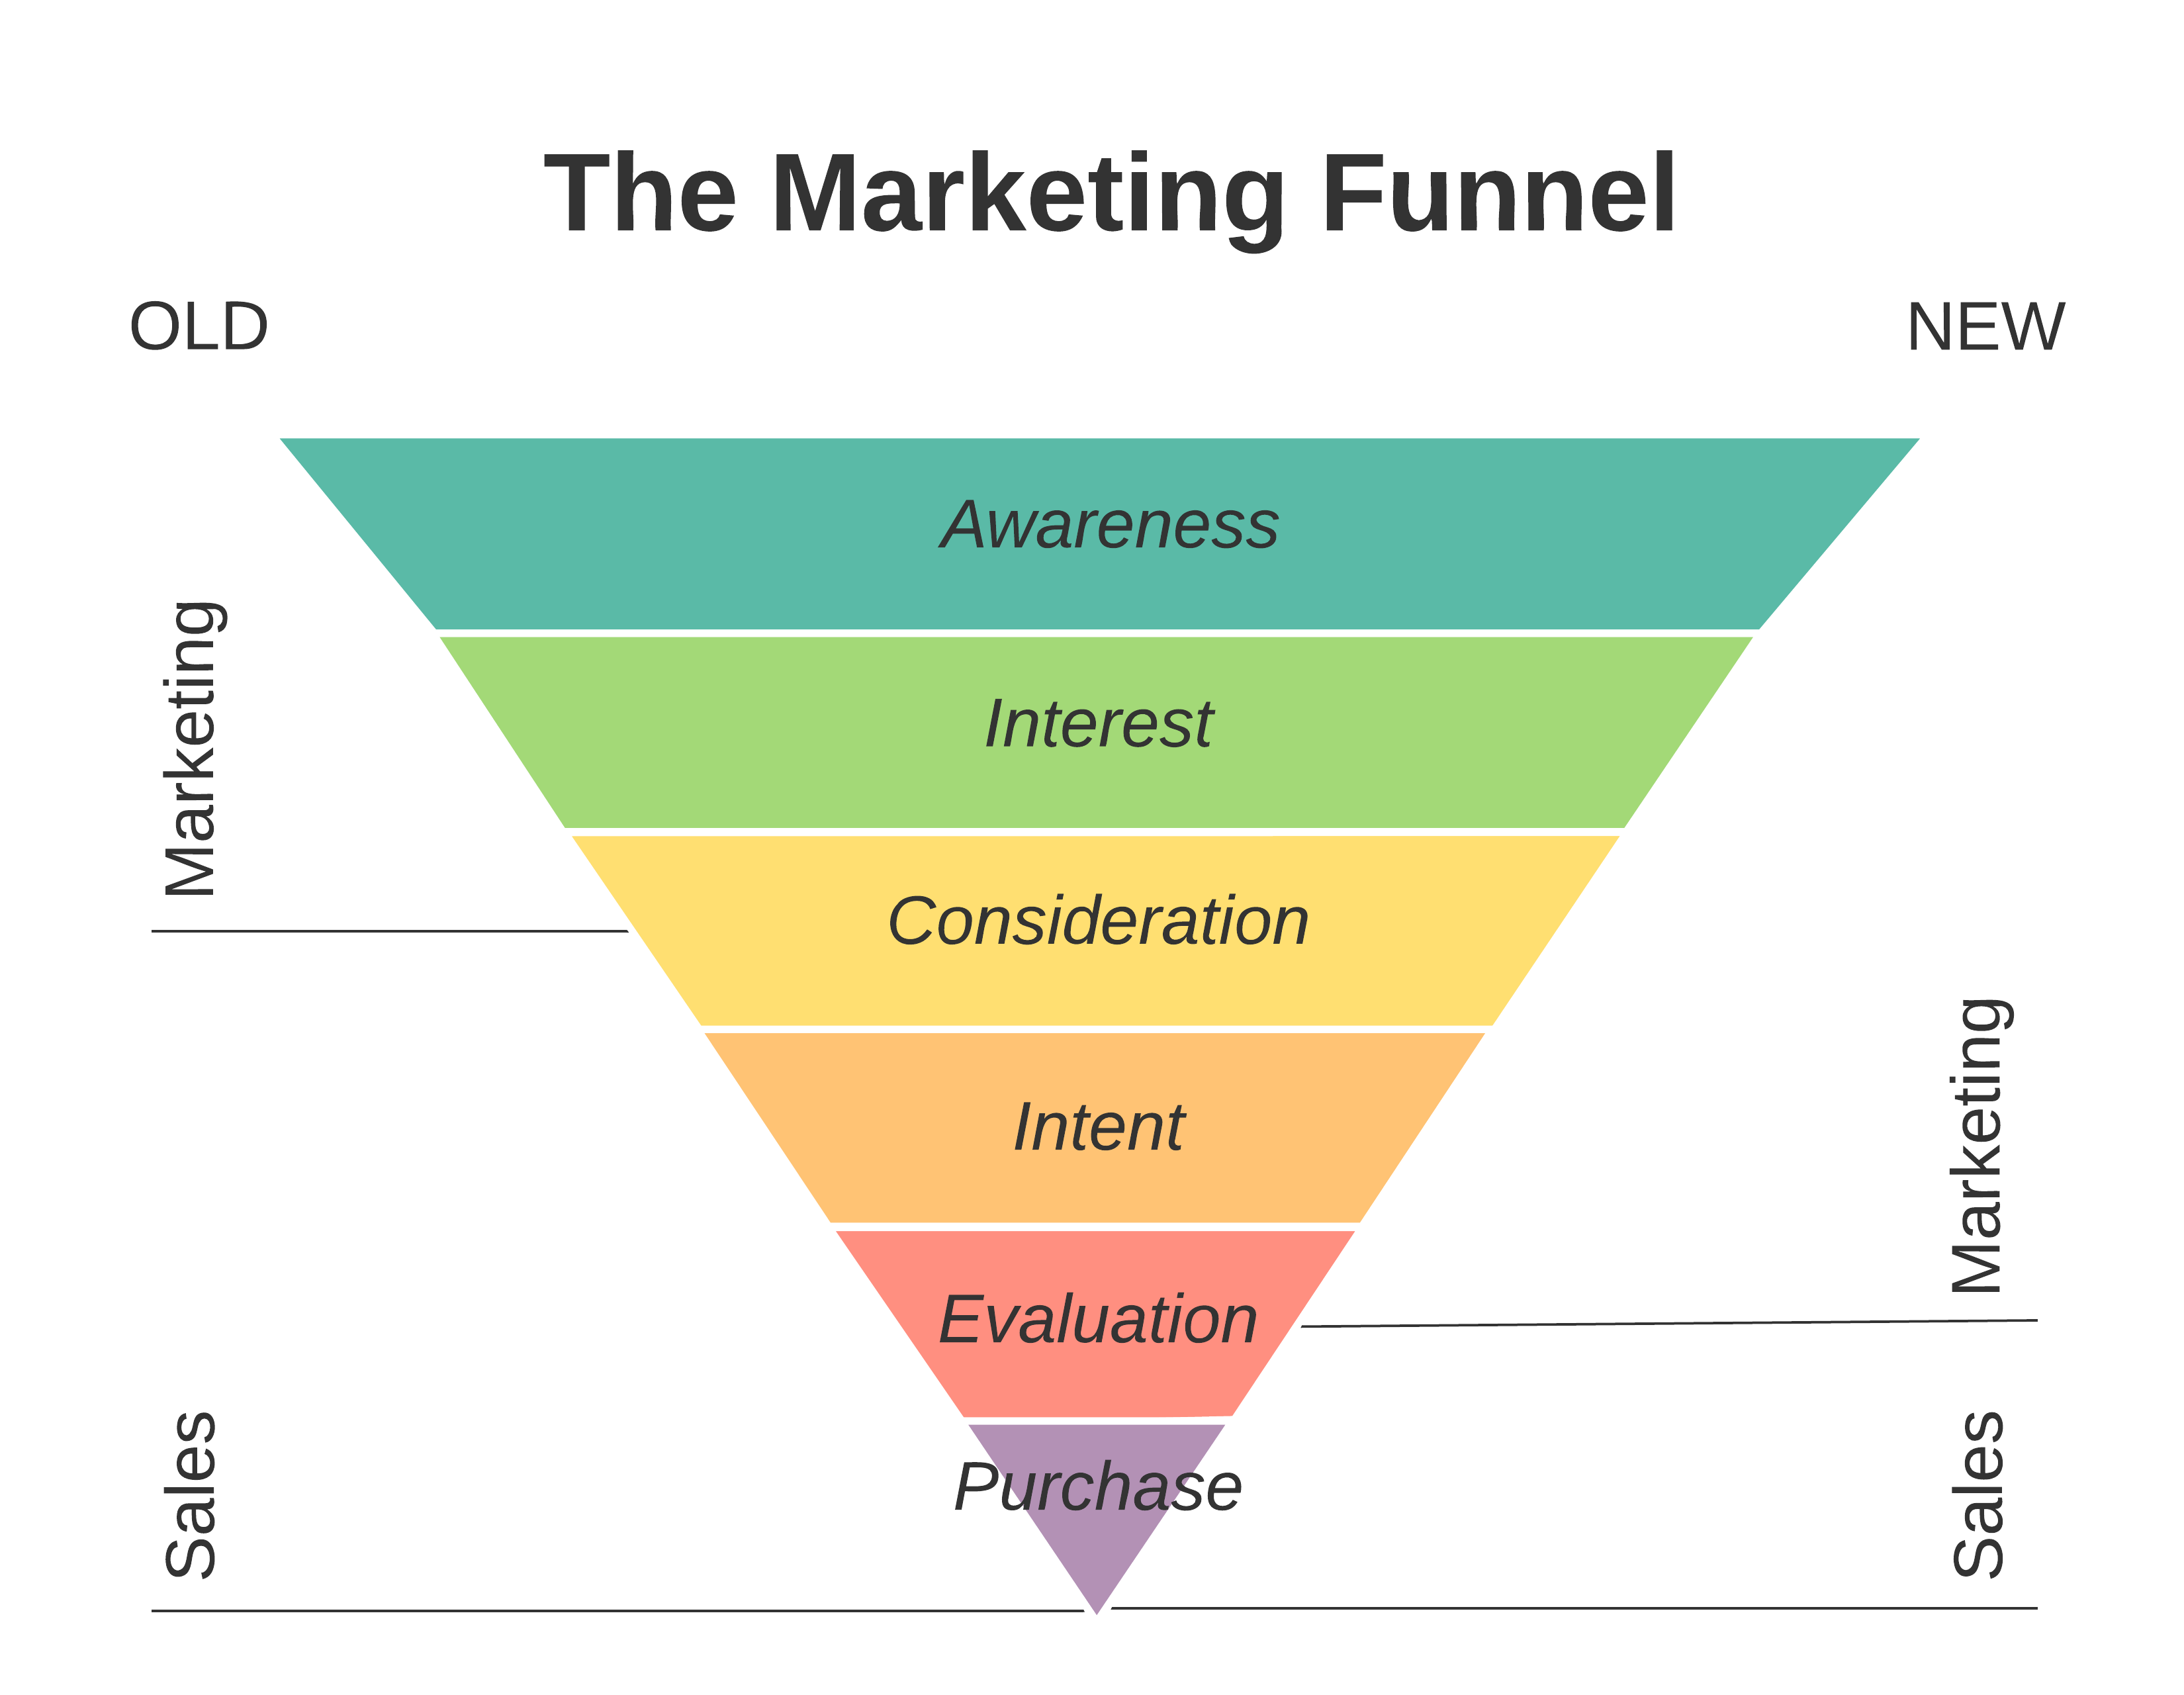 Marketing Funnel Pyramid.png